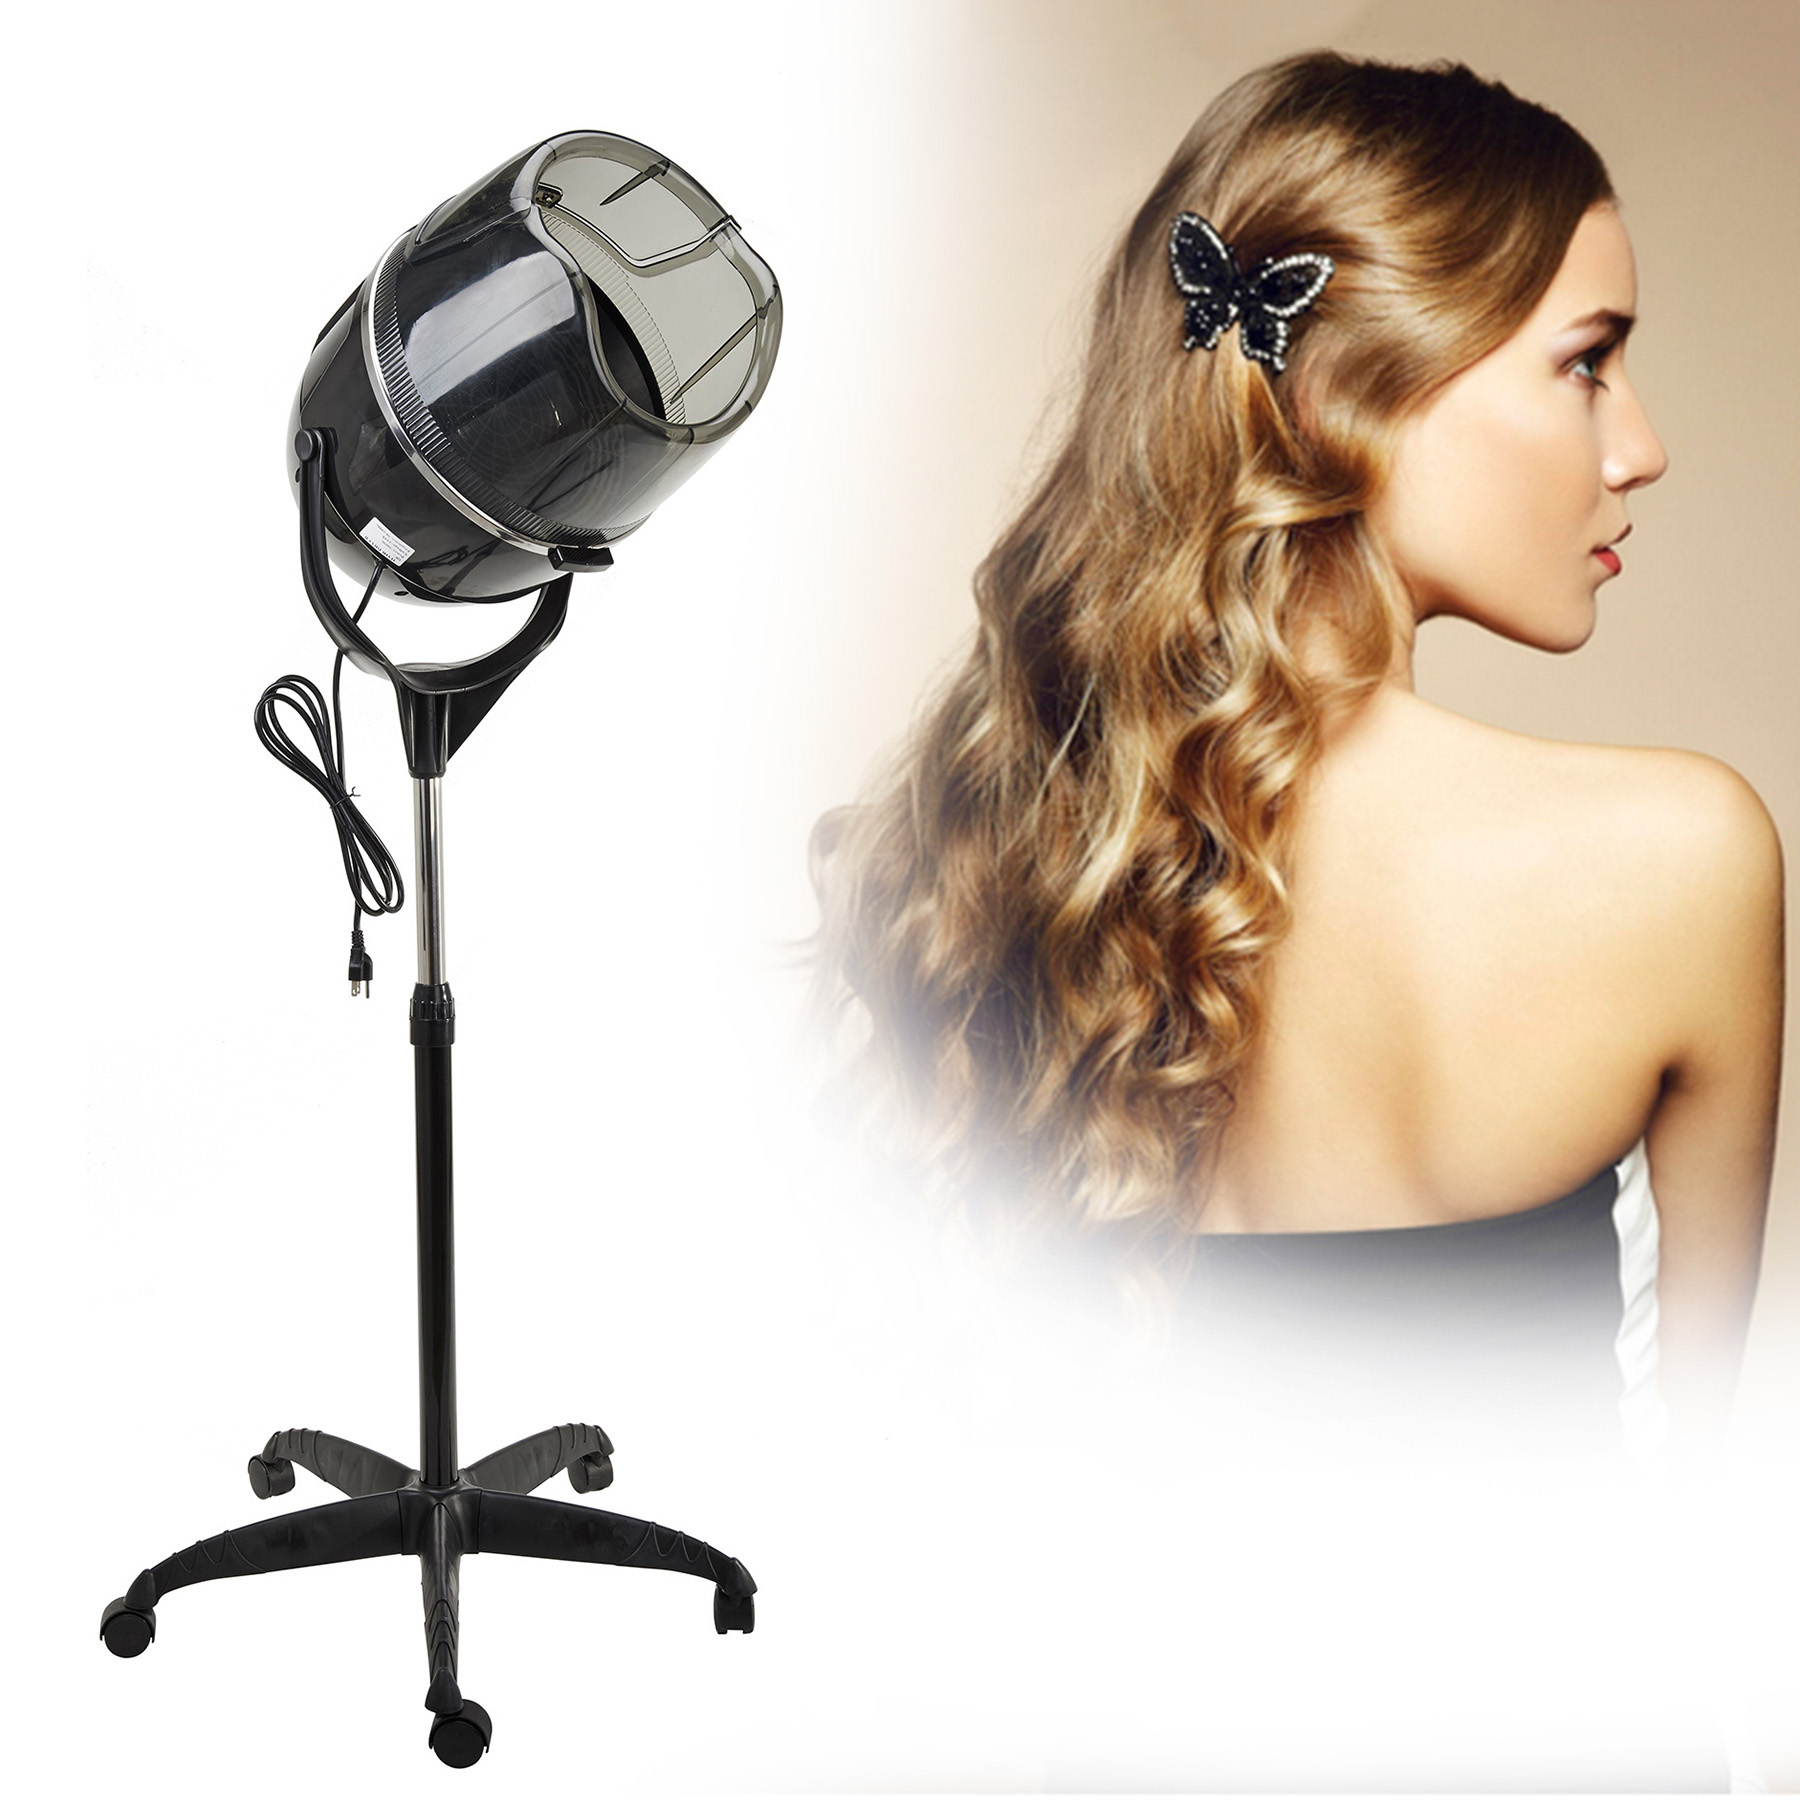 Adjustable Stand Up Hair Dryer with Bonnet Style Hood